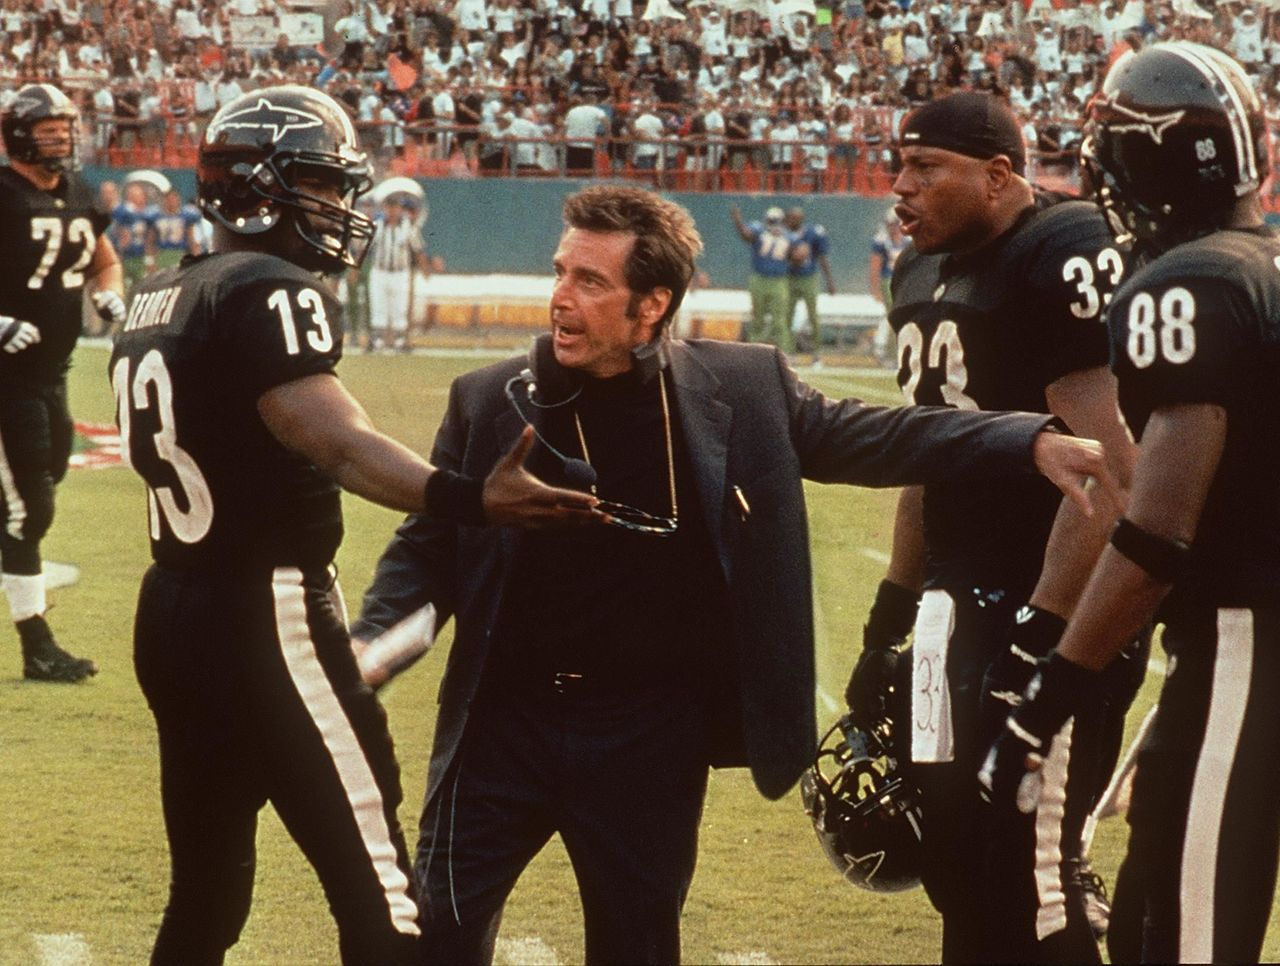 Ranking the 20 best football movies of all time